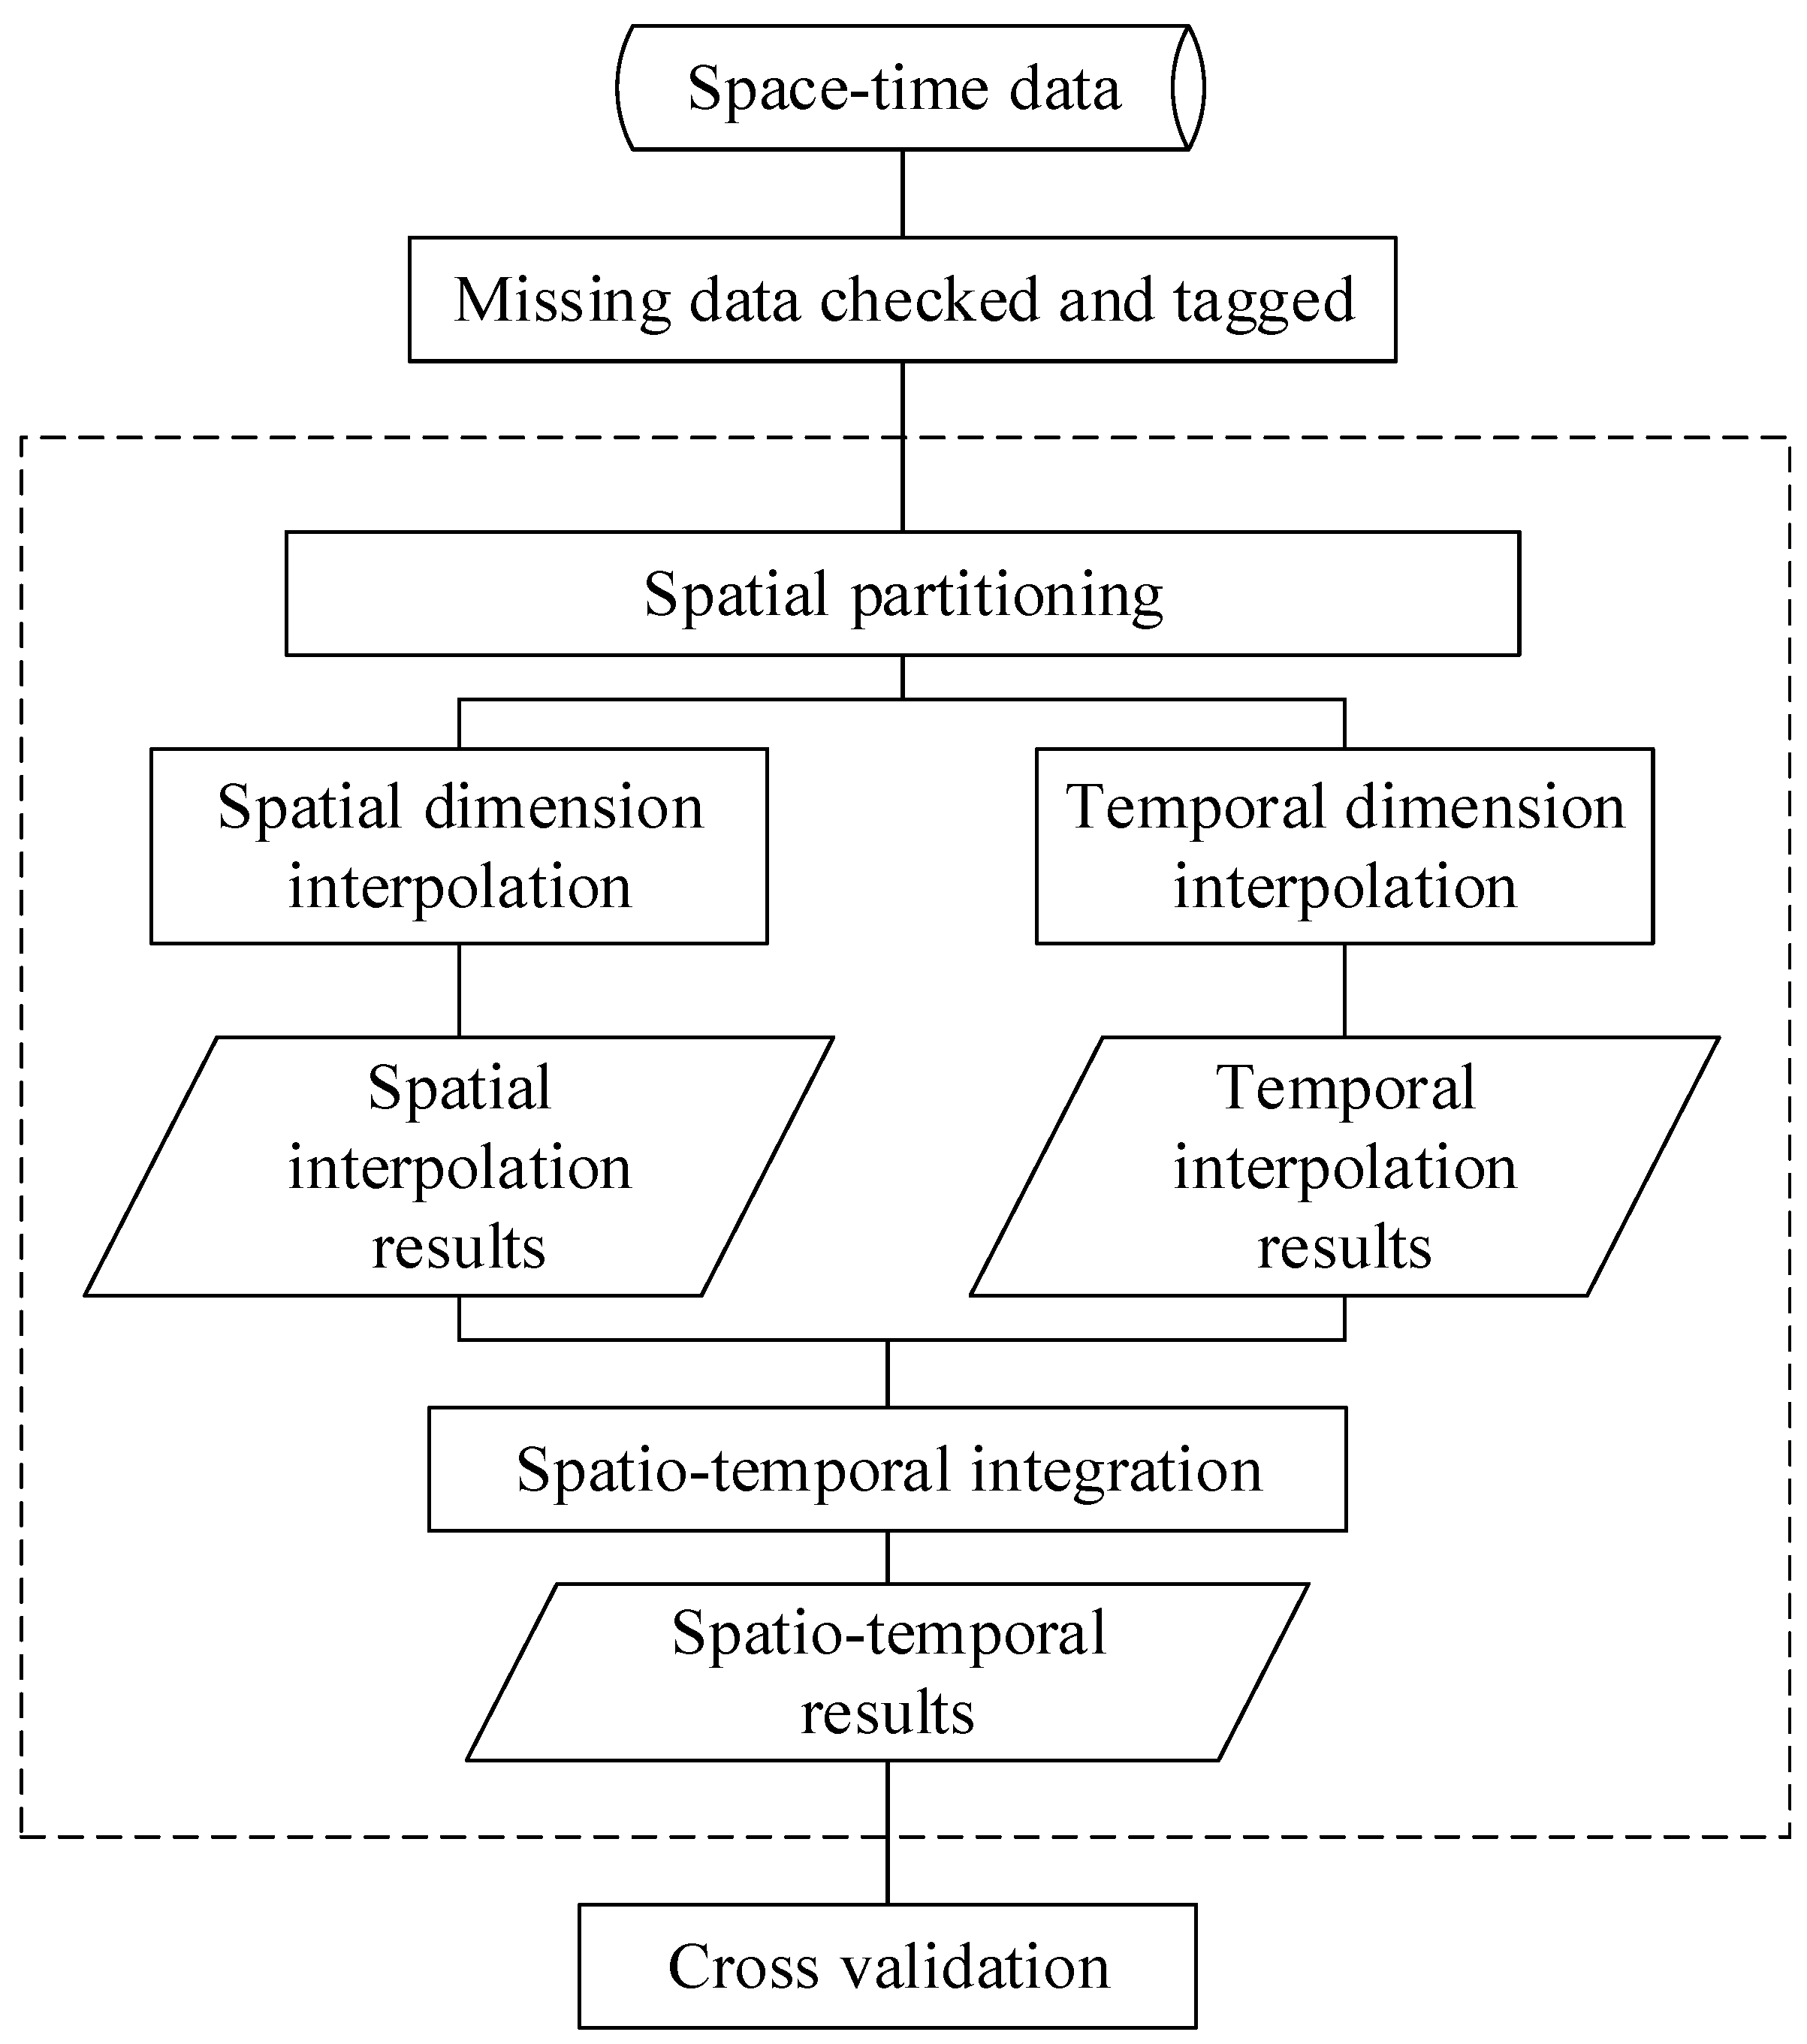 Assessment Scale Of Interracial Relationships 1995